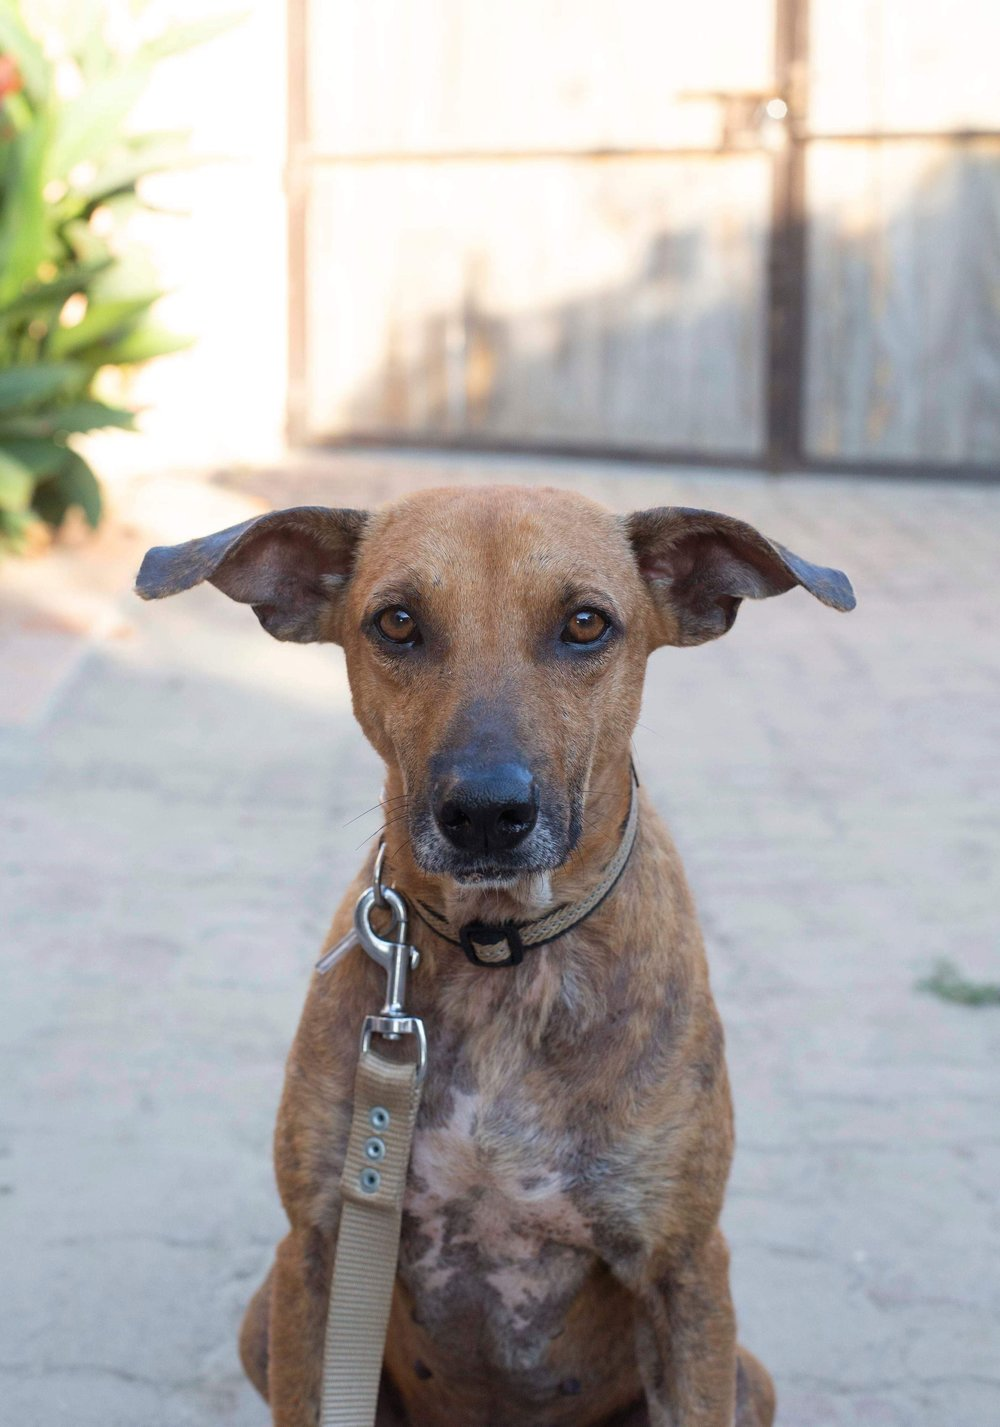 Taco Banderas, our 500th rescue from sayulita, Mexico - April 2019